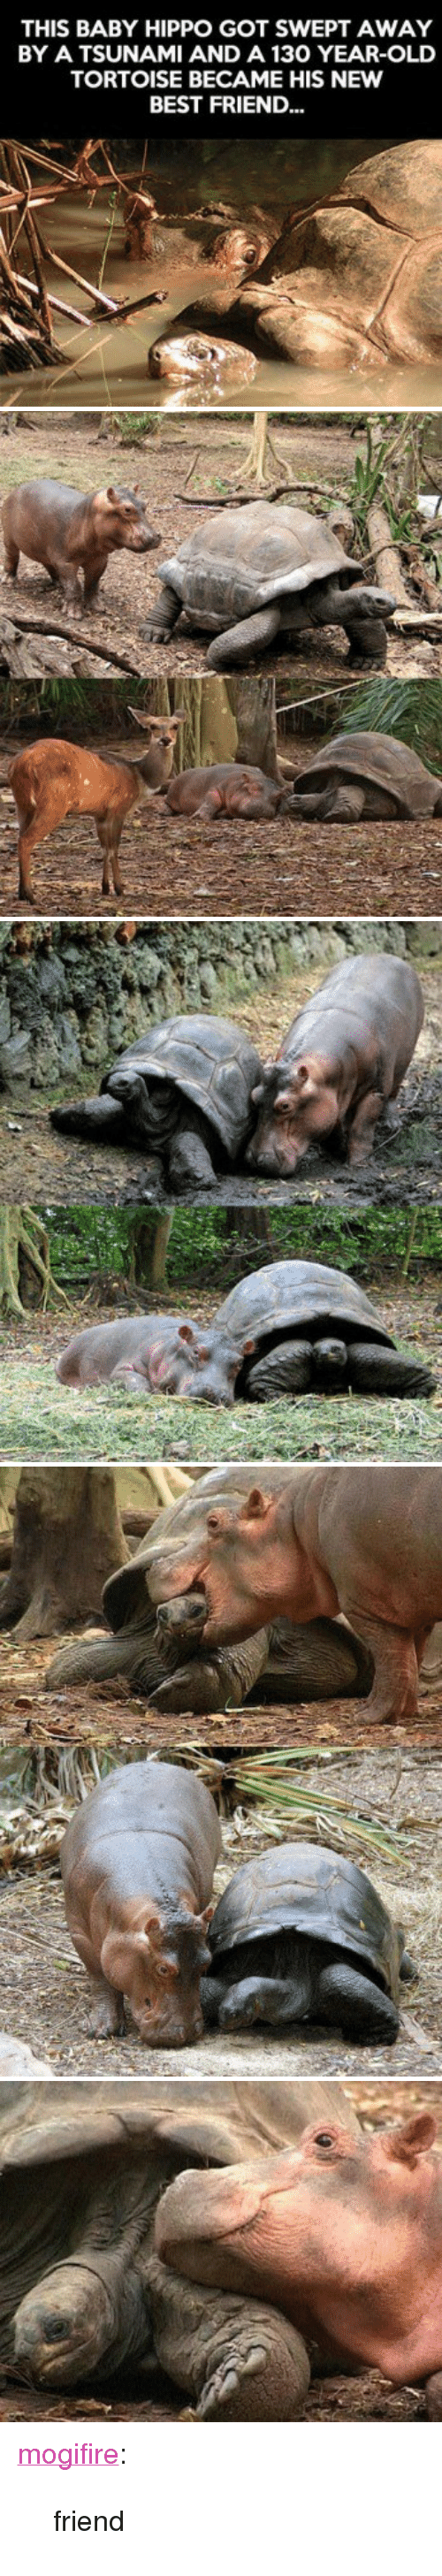 """Best Friend, Tumblr, and Best: THIS BABY HIPPO GOT SWEPT AWAY  BY A TSUNAMI AND A 130 YEAR-OLD  TORTOISE BECAME HIS NEW  BEST FRIEND... <p><a href=""""http://mogifire.tumblr.com/post/157412233739/friend"""" class=""""tumblr_blog"""">mogifire</a>:</p><blockquote><p>friend<br/></p></blockquote>"""